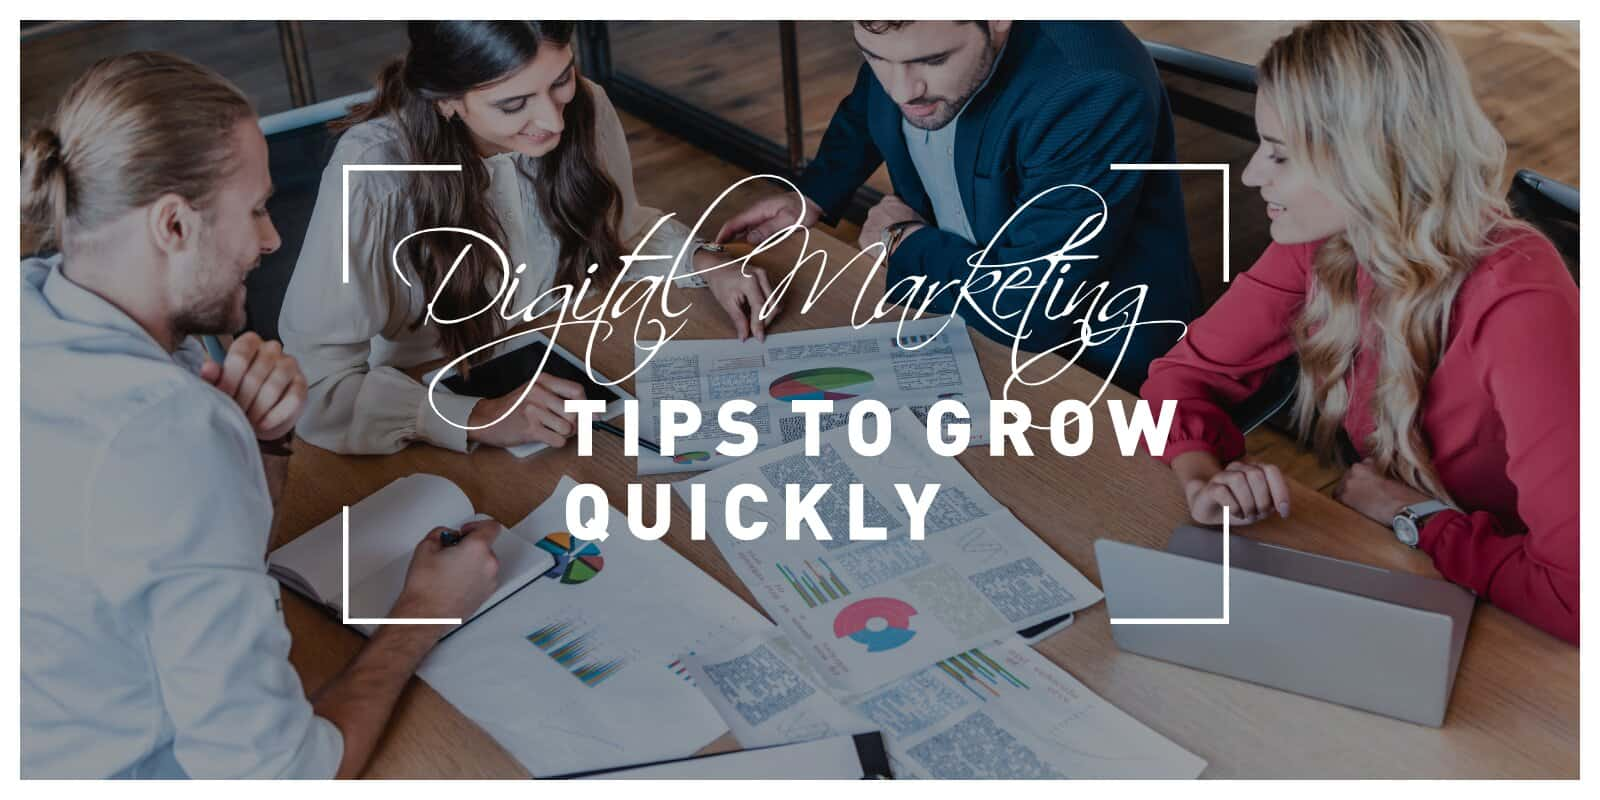 5 Digital Marketing Tips to Grow Quickly